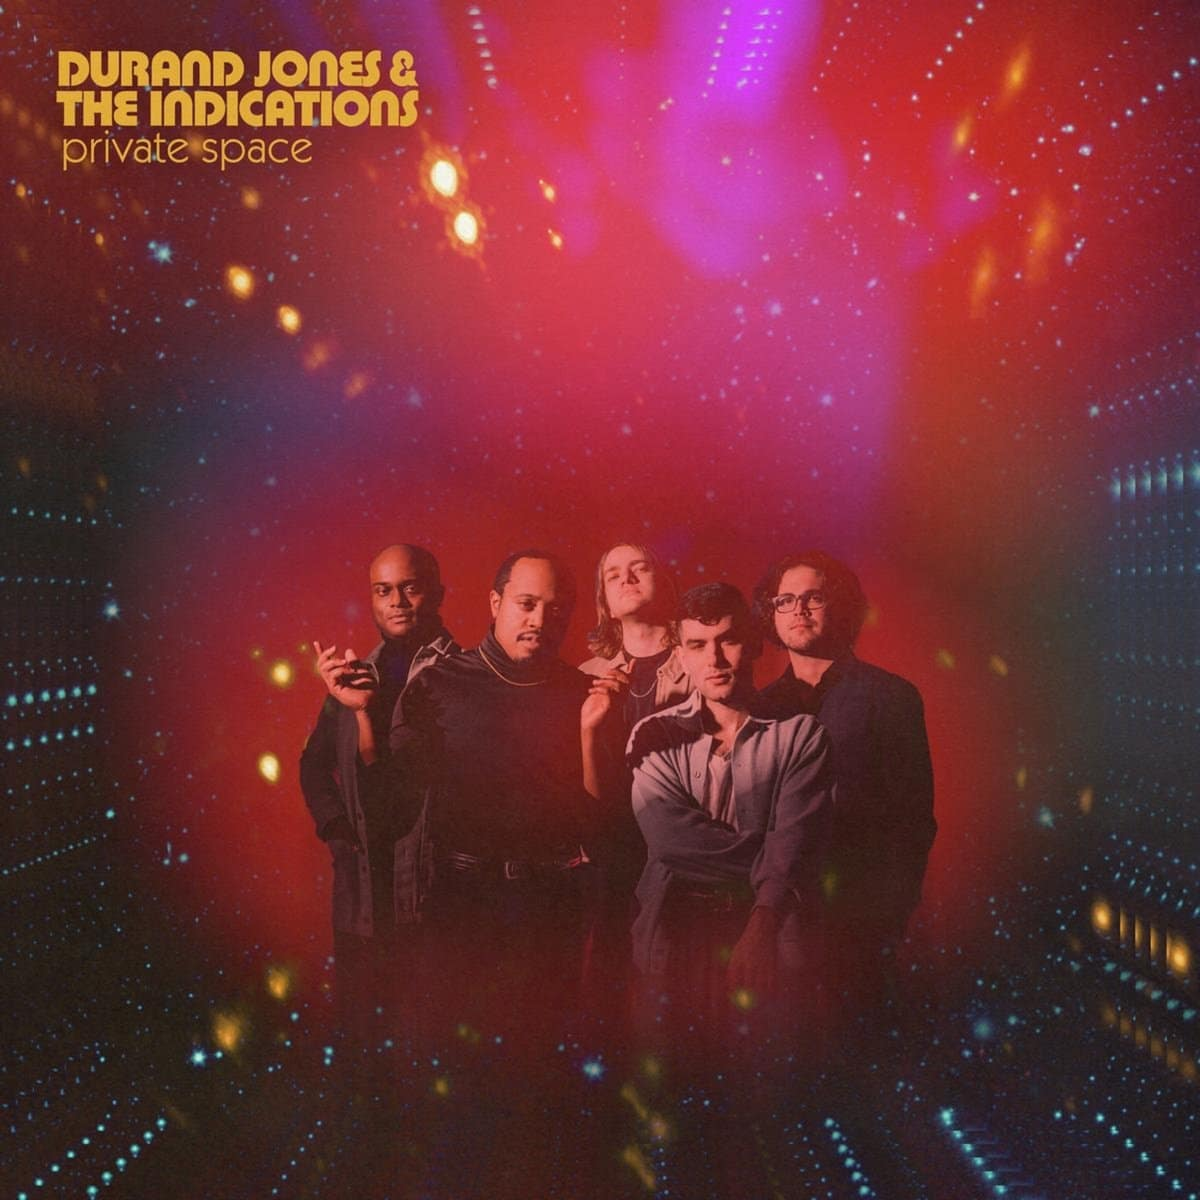 Durand Jones & The Indications Private Space